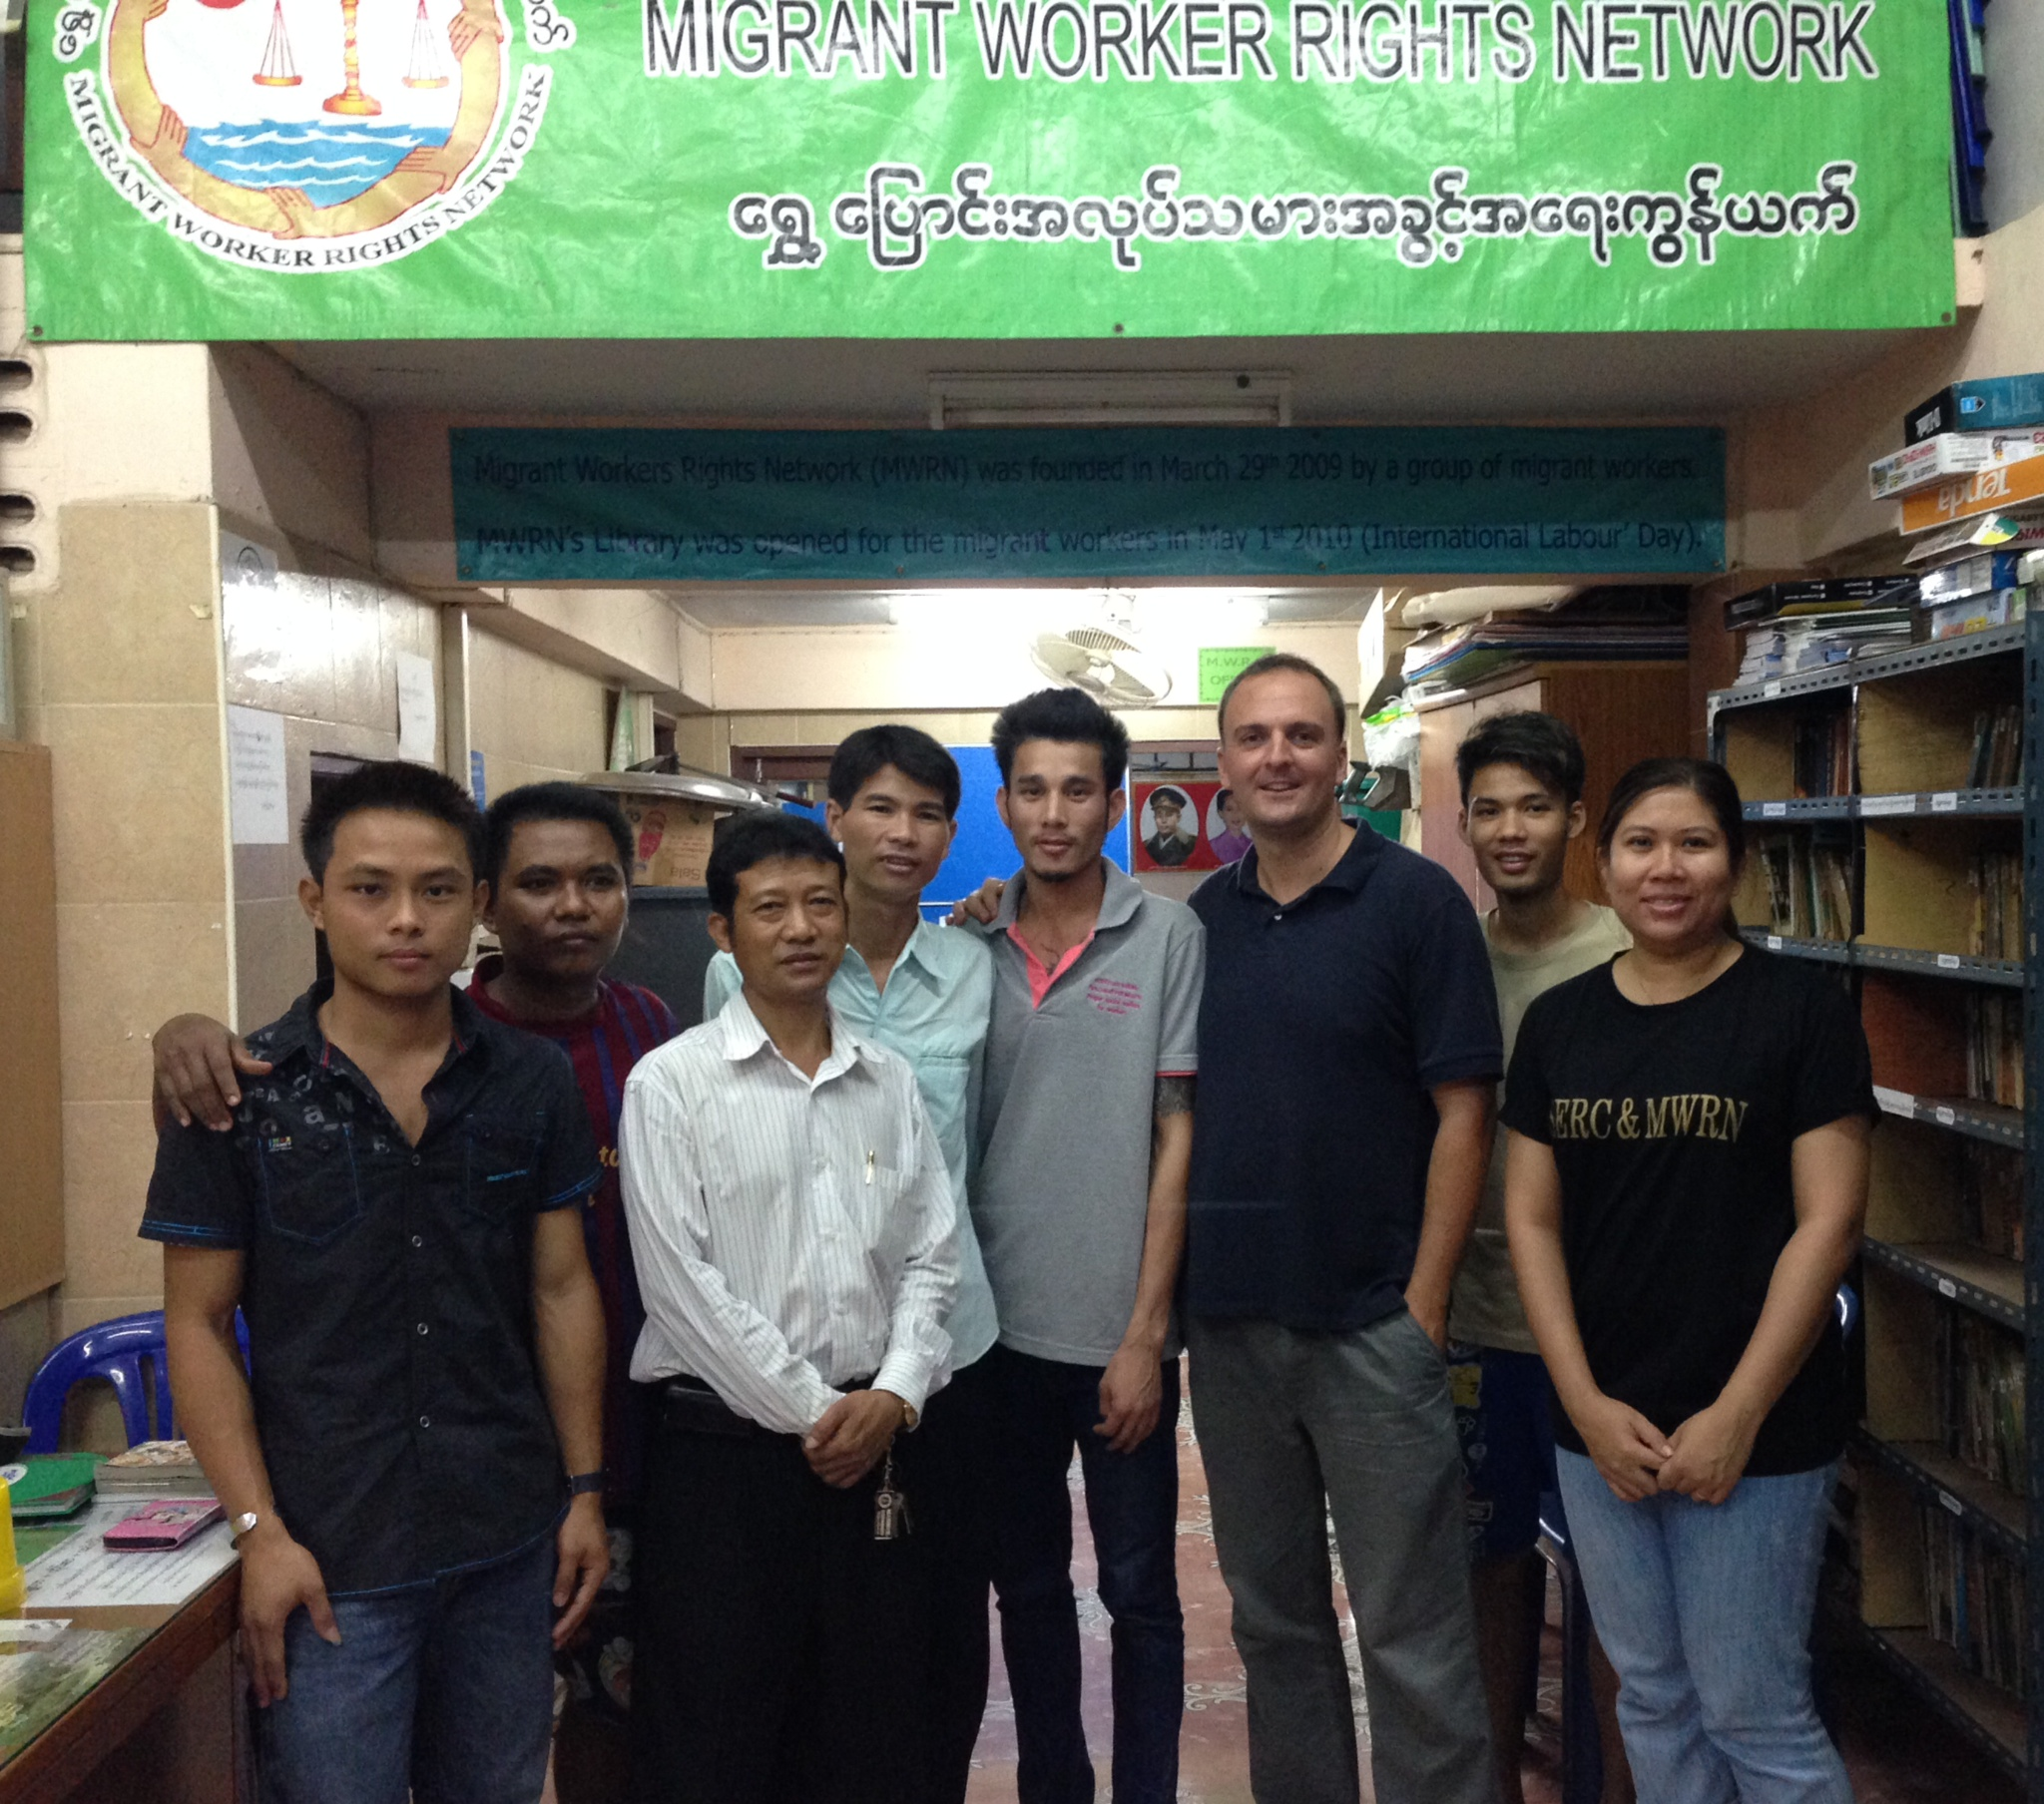 Andy Hall (3rd from right) and colleagues at the Migrant Worker Rights Network. Photo: MWRN.